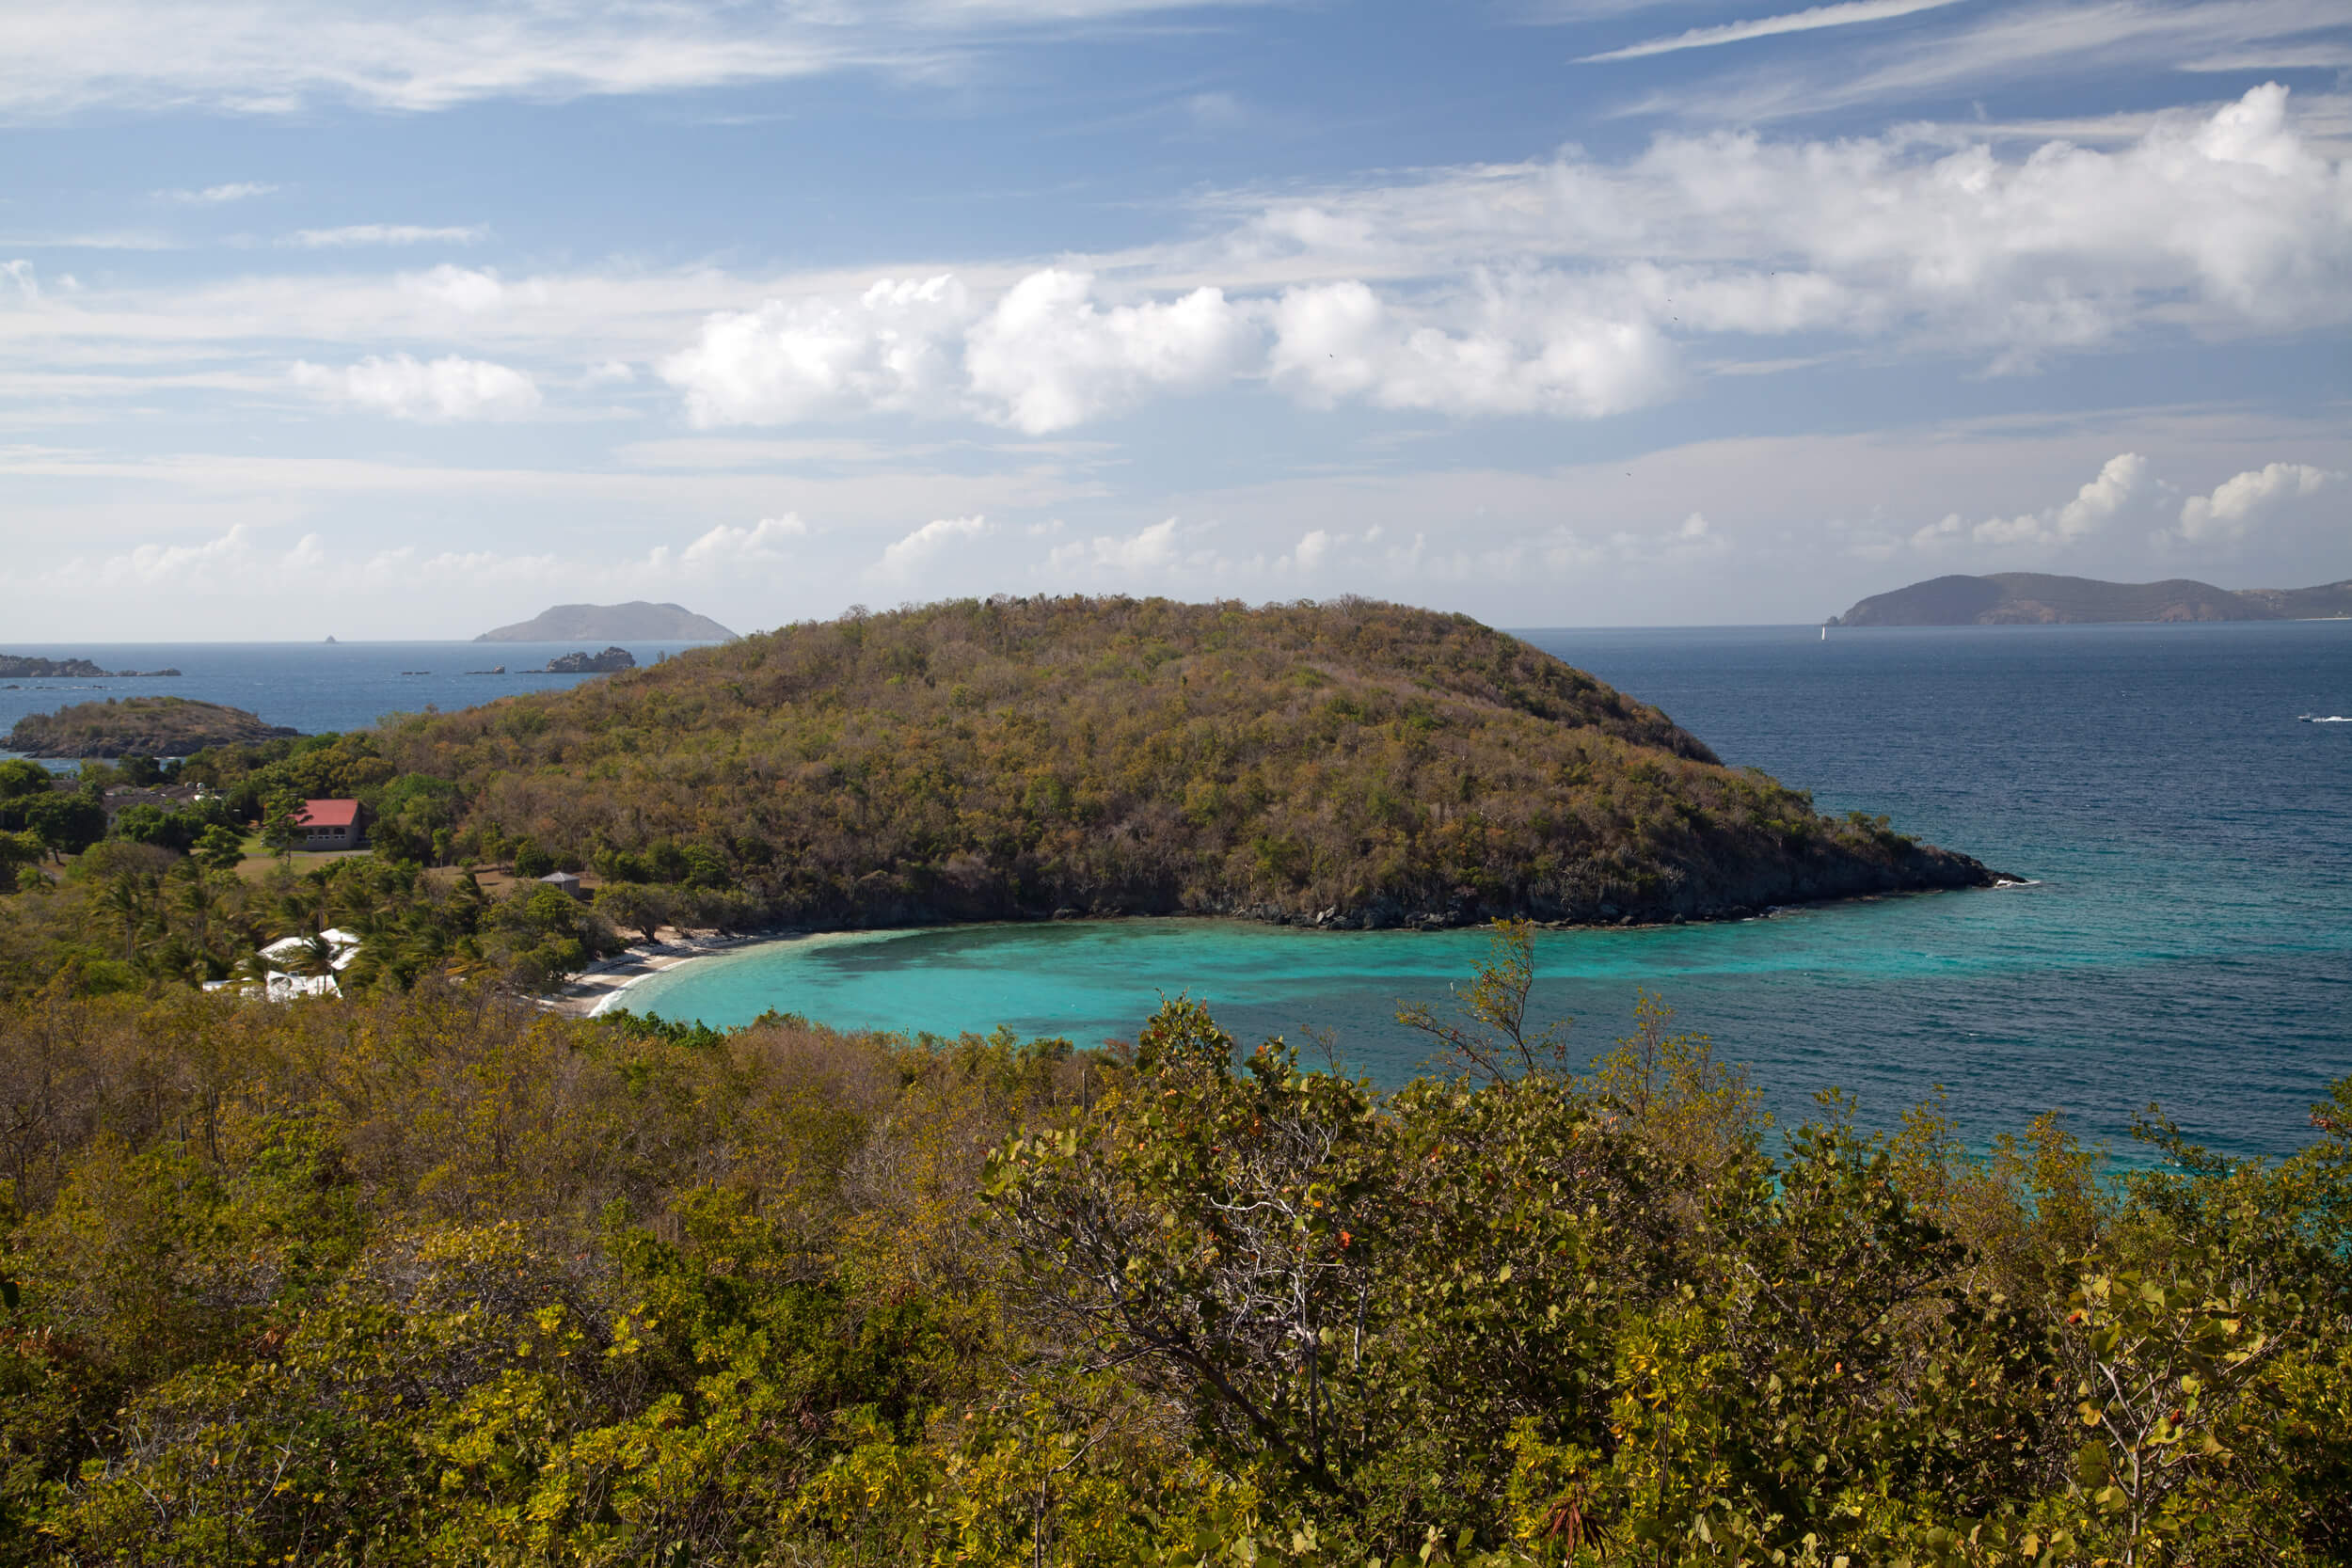 Hawksnest Bay with BVI in the background